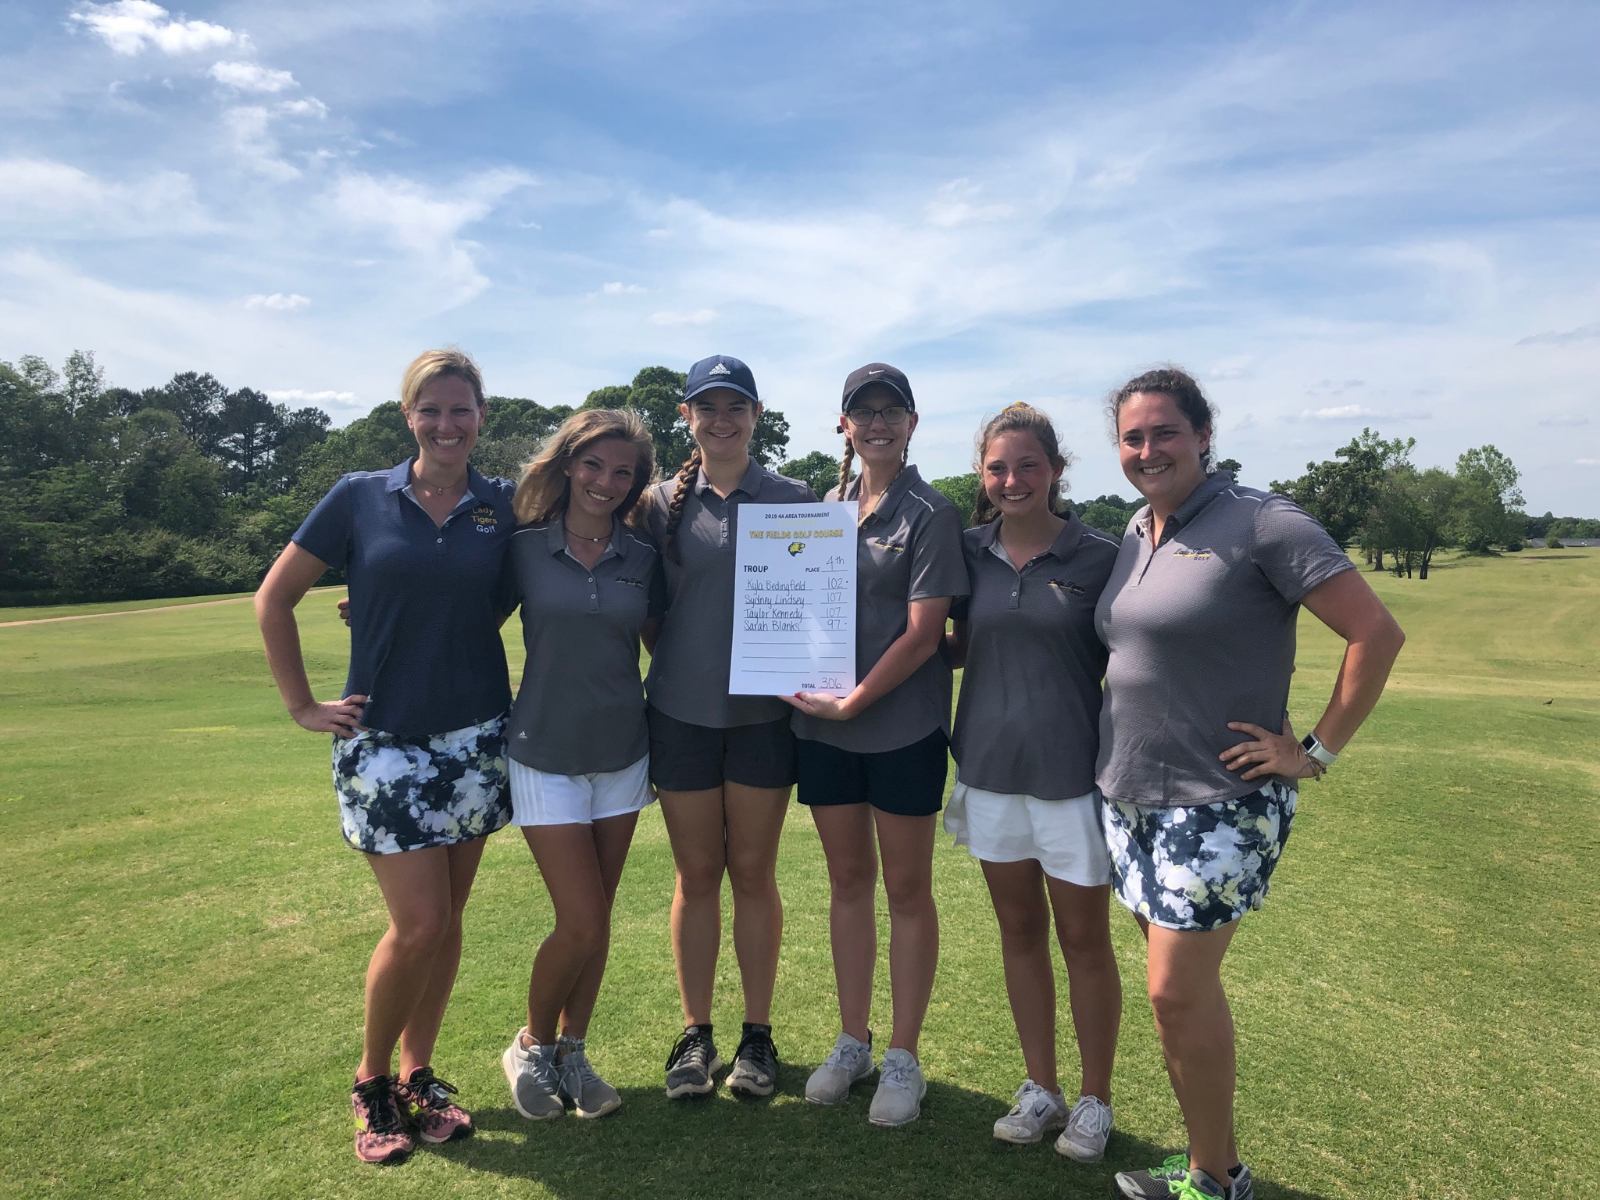 Girls' Golf Team headed to STATE!